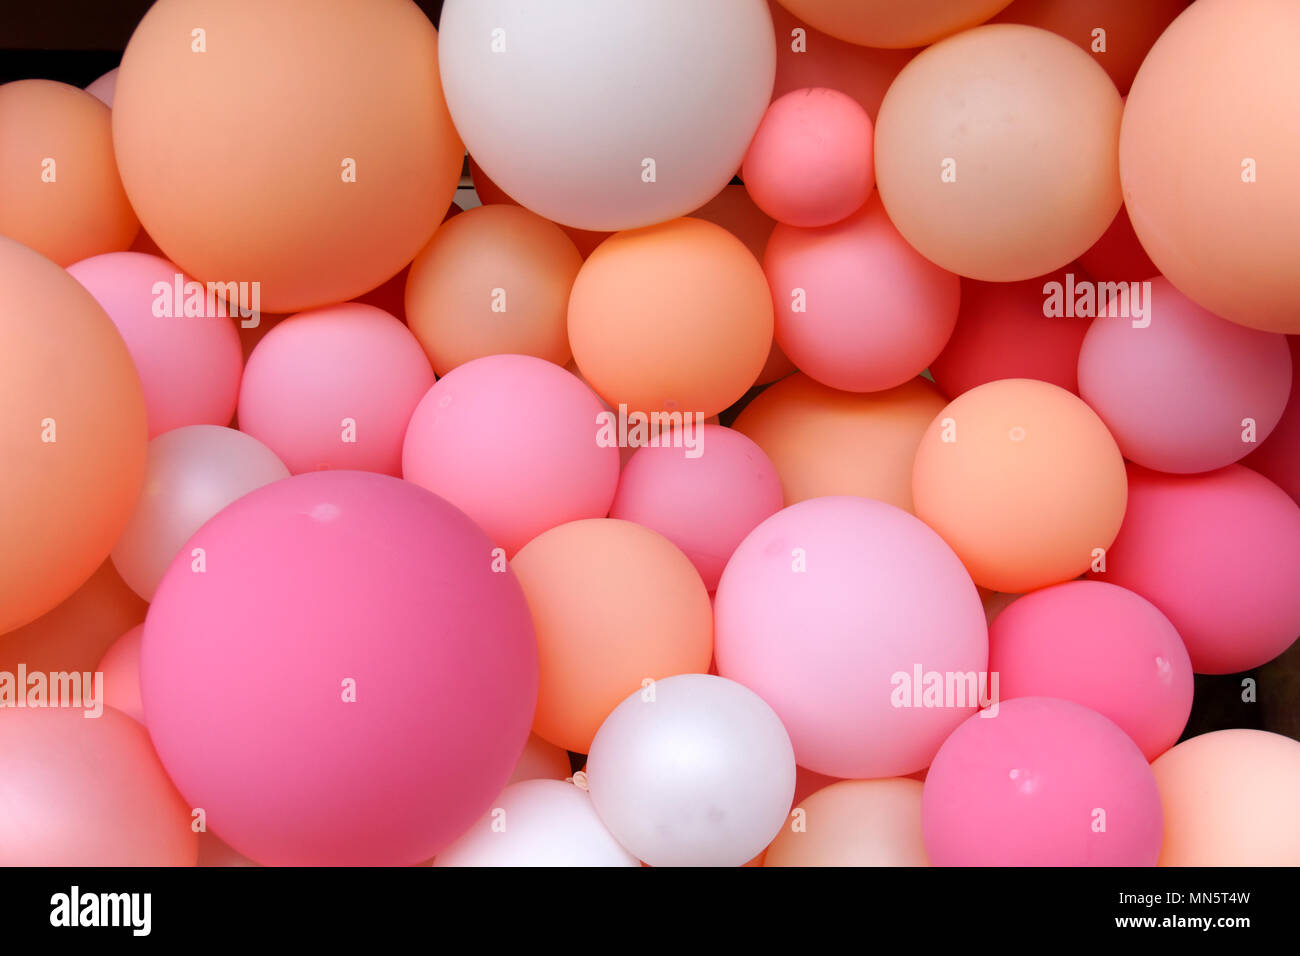 close-up-of-colorful-spherical-balloons-